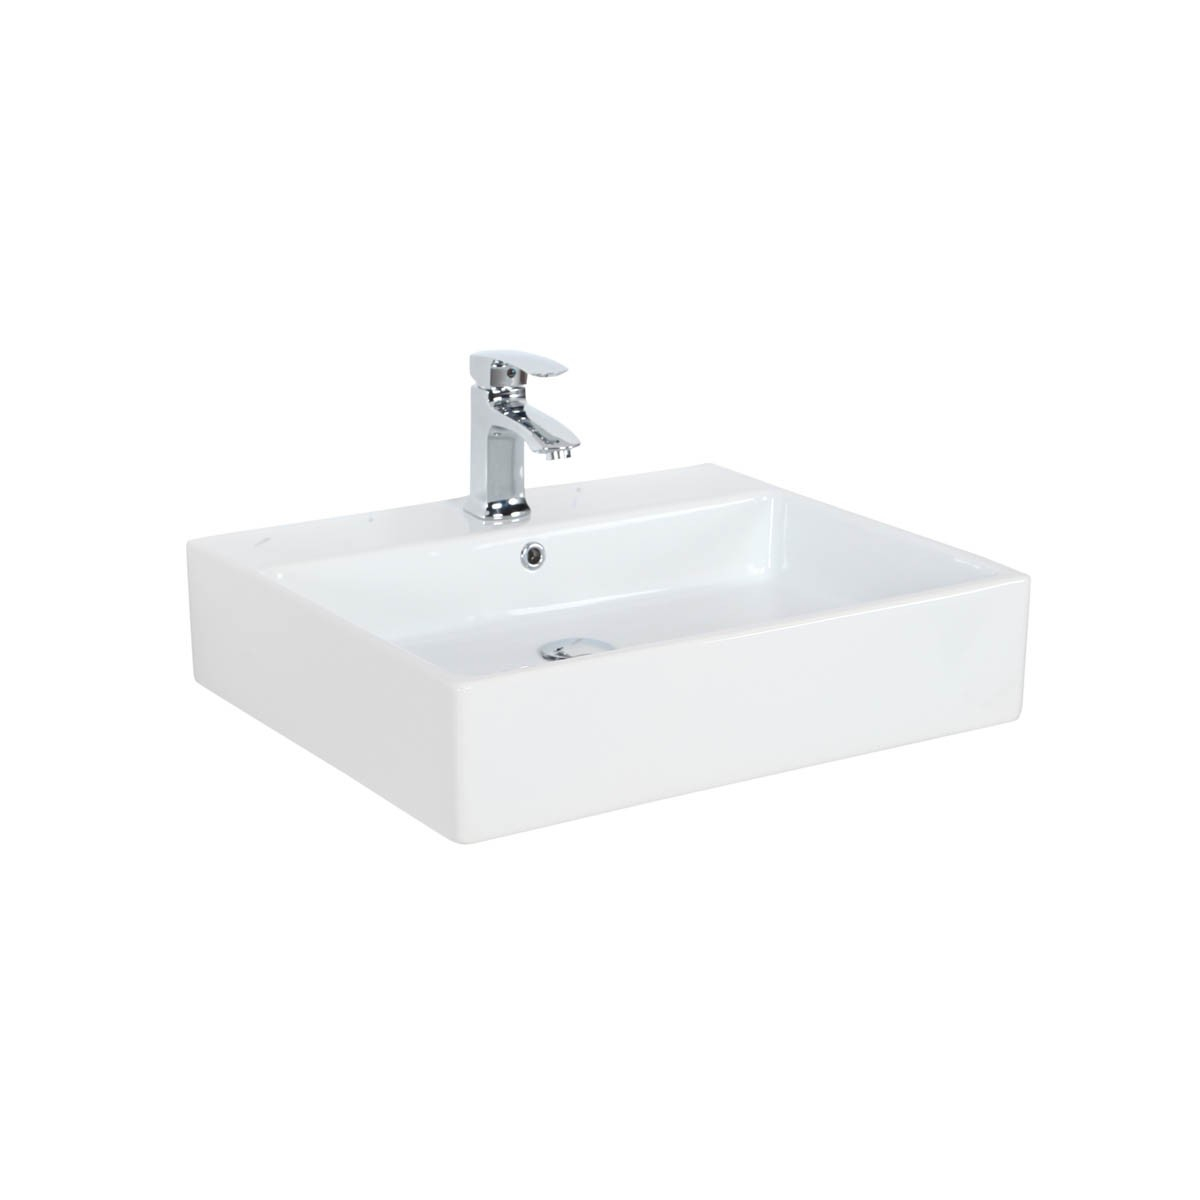 Modern Ada Compliant Bathroom Sinks | Modo Bath within Ada Compliant Bathroom Sink